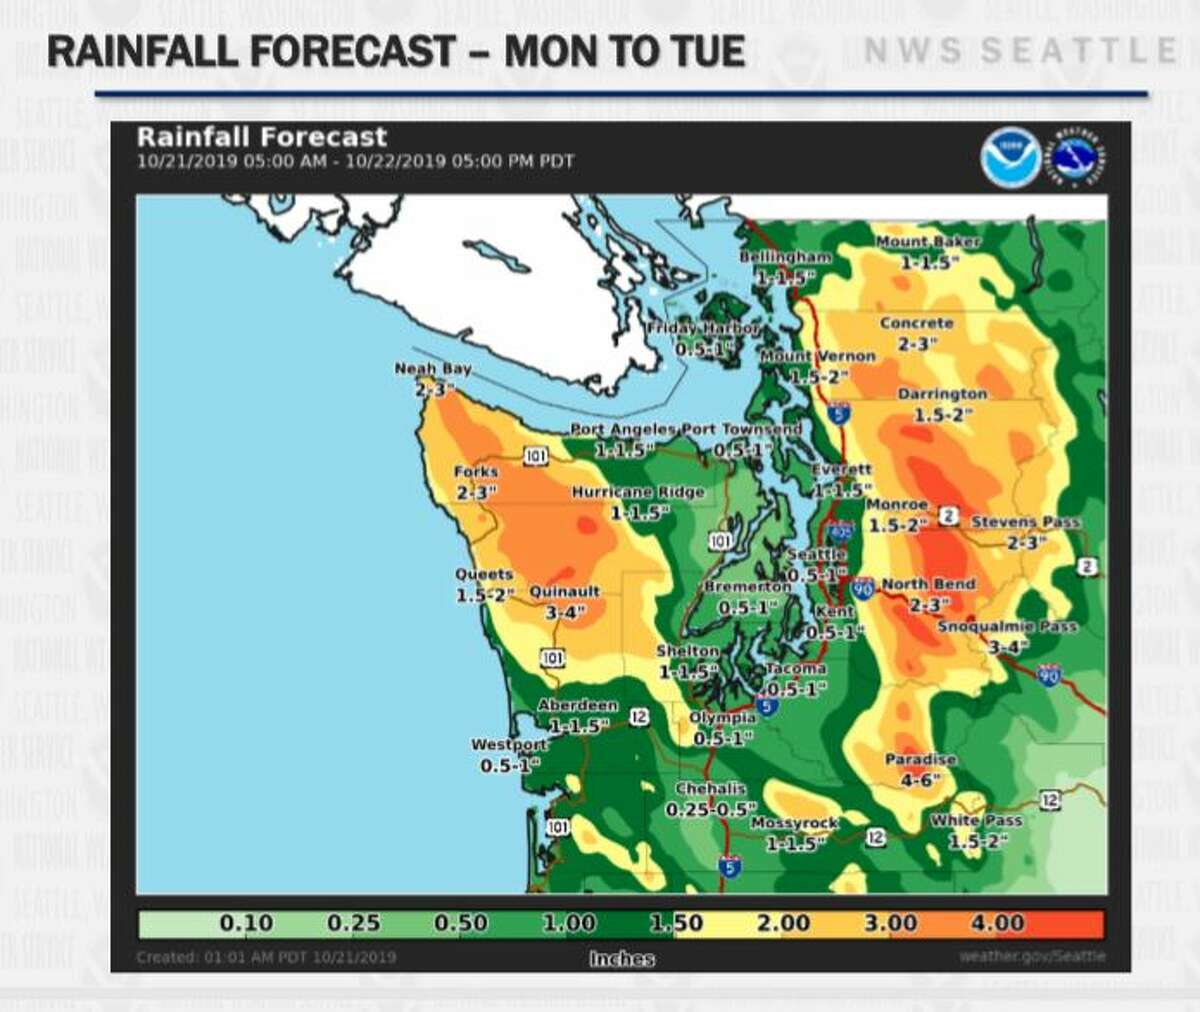 Seattle was expected to get about an inch of rain over the next two days. Some mountain areas could see up to 4 inches.